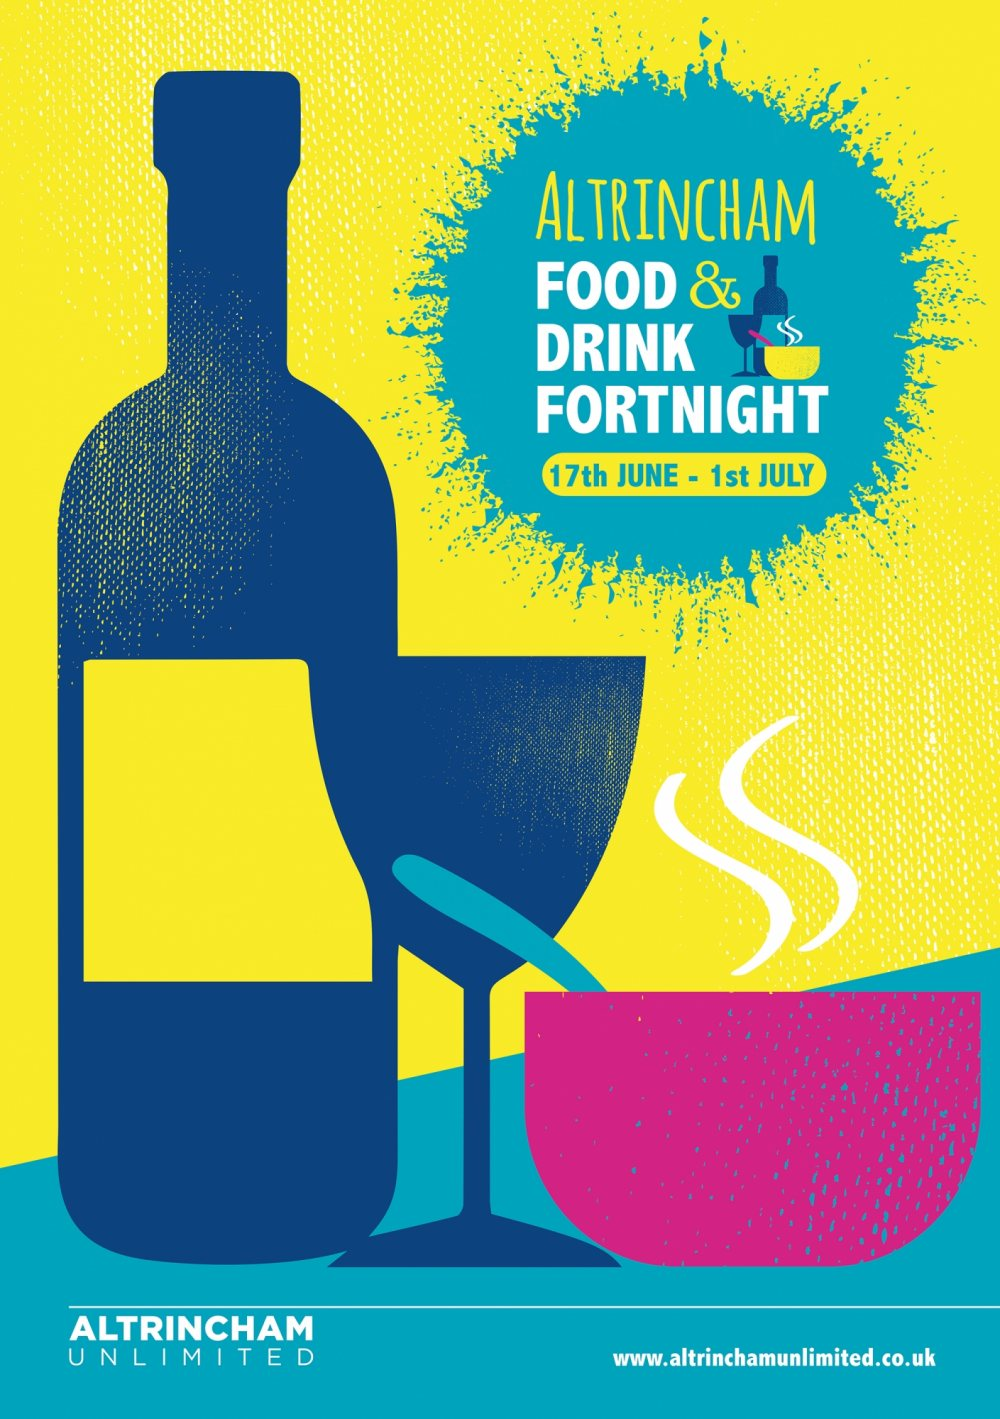 Food & Drink Fortnight announced for Altrincham